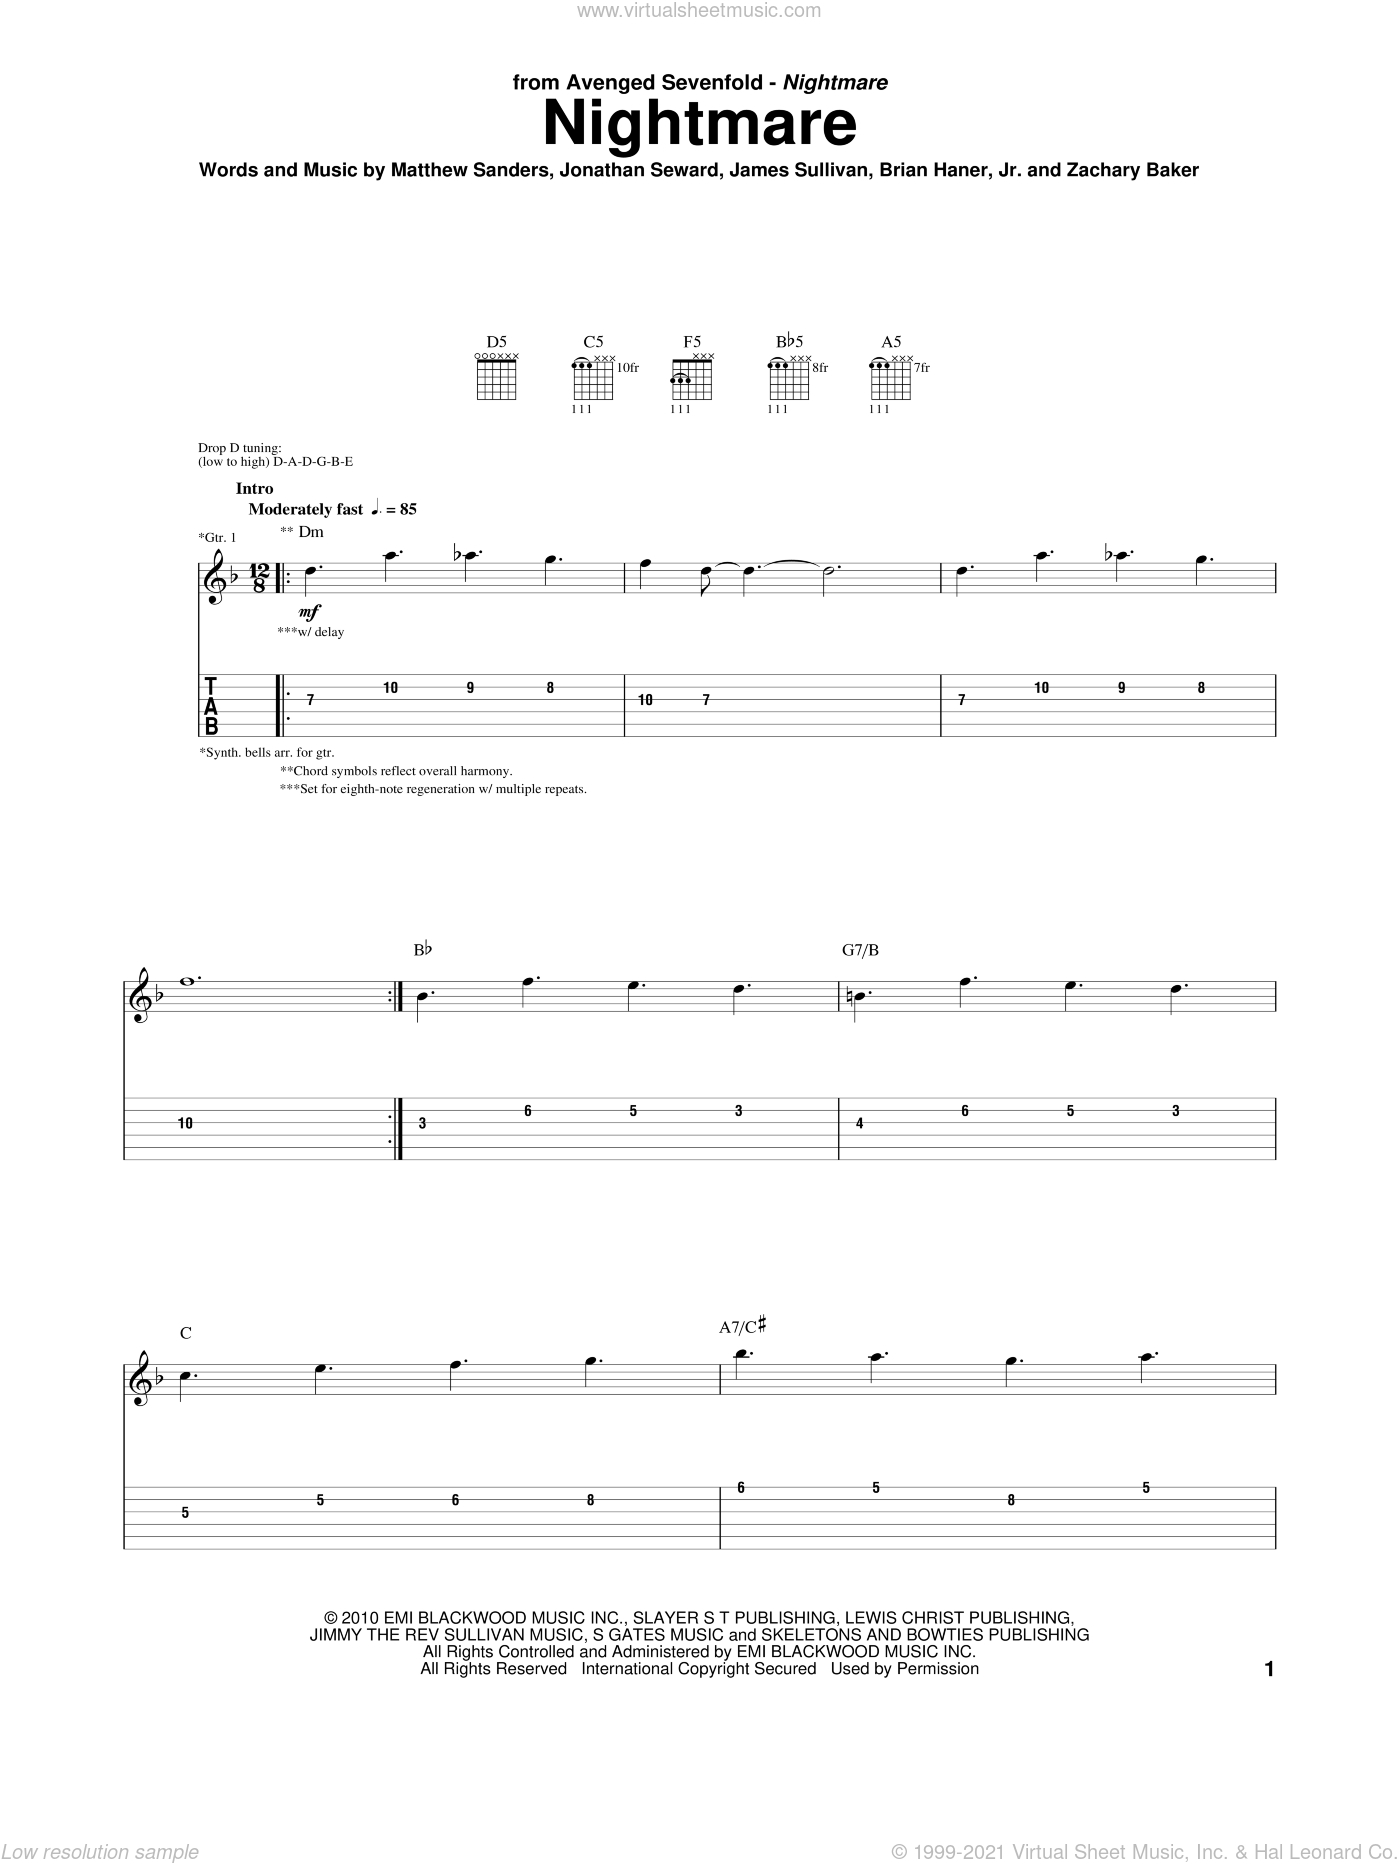 Nightmare sheet music for guitar (tablature) by Avenged Sevenfold, Brian Haner, Jr., James Sullivan, Matthew Sanders and Zachary Baker, intermediate skill level